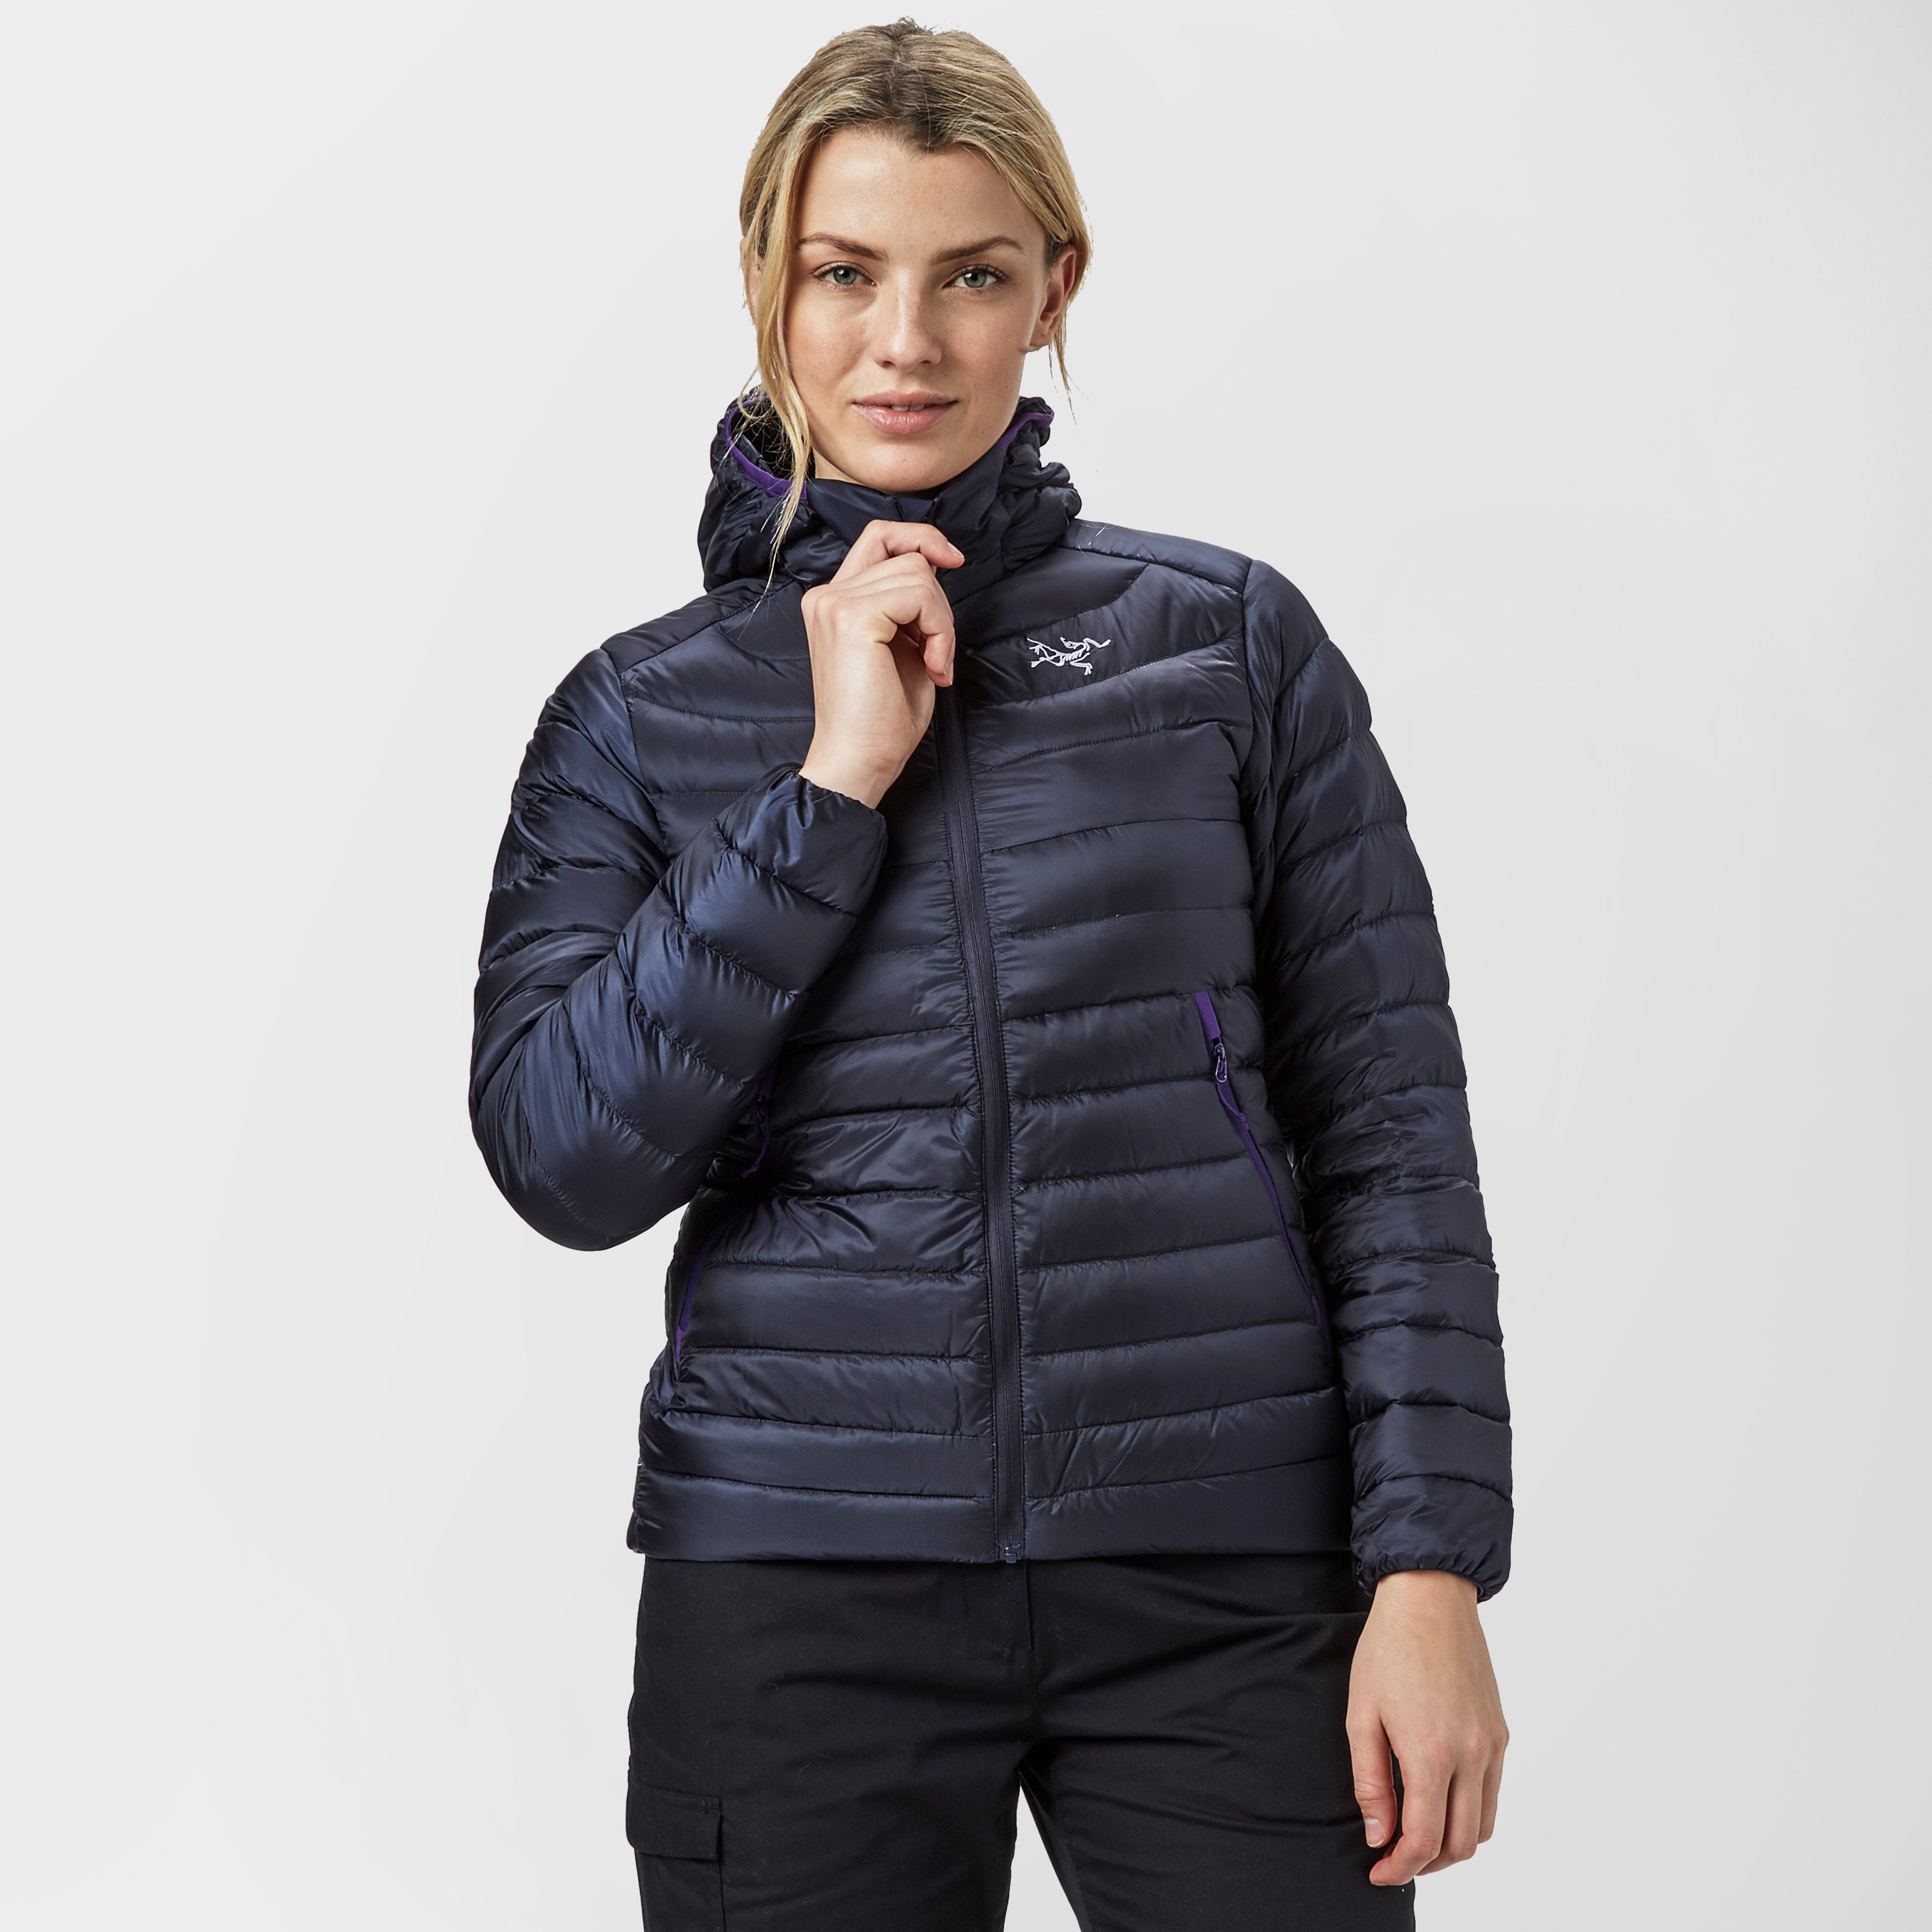 ARC'TERYX Women's Cerium SV Hooded Jacket